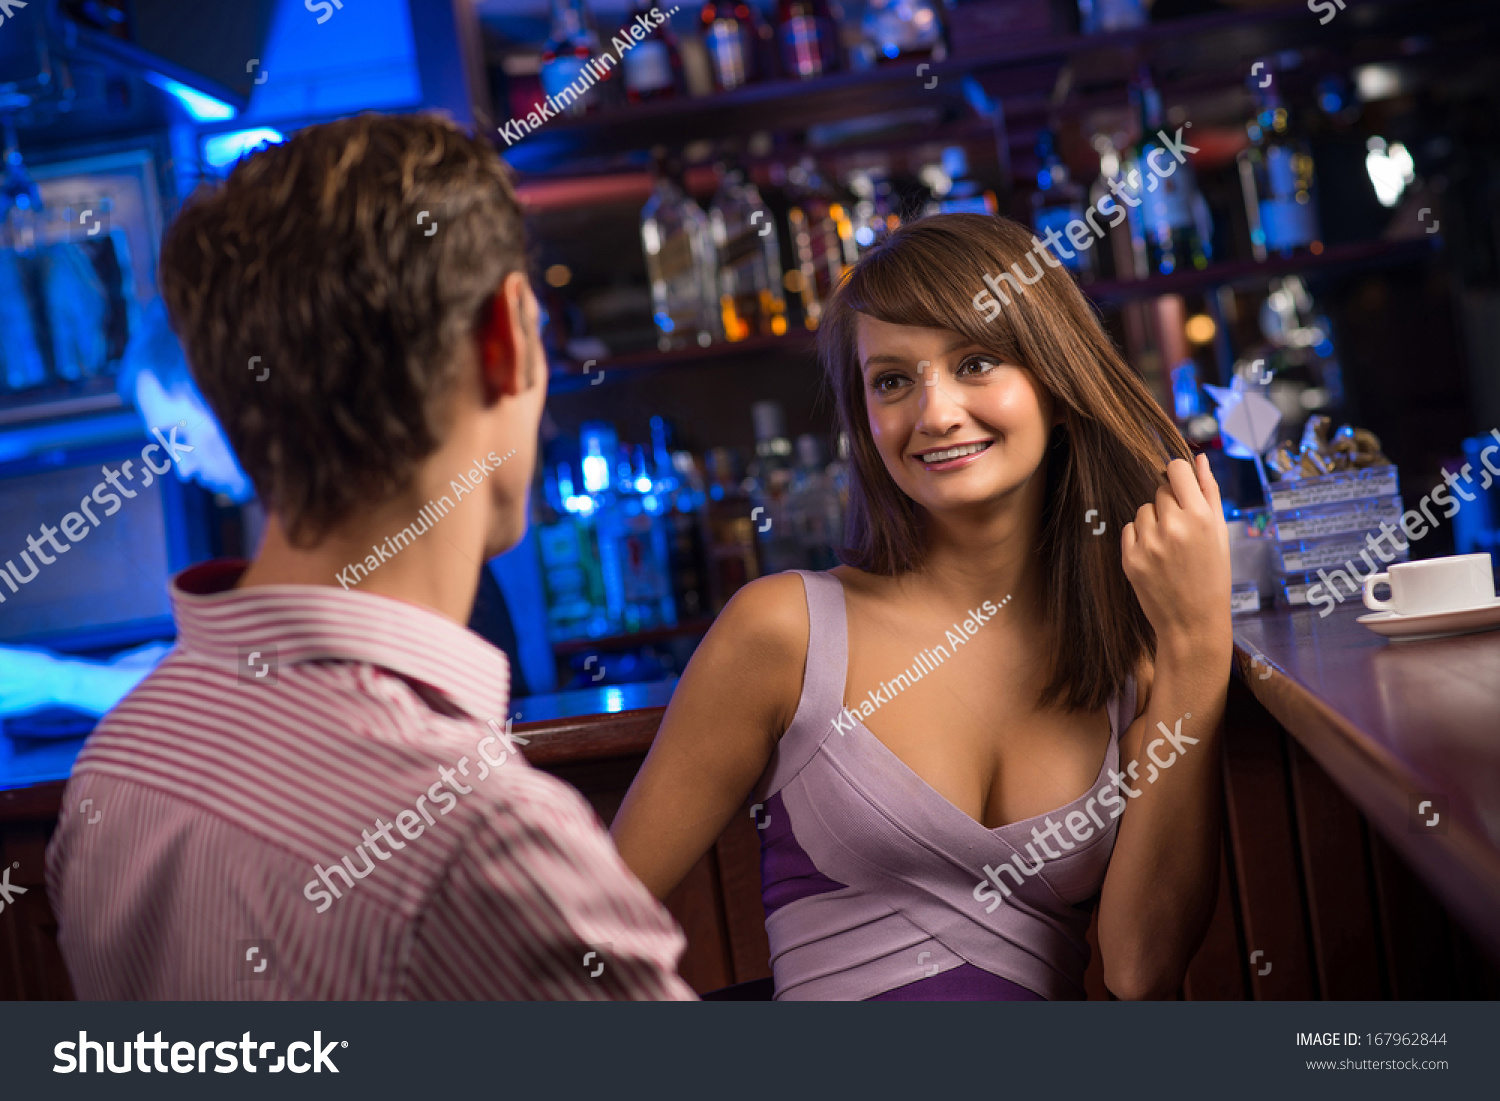 dating a girl that works at a bar At the top of your opera window, near the web address, you should see a gray location pinclick it in the window that pops up, click clear this setting you're good to go reload this yelp page and try your search agai.